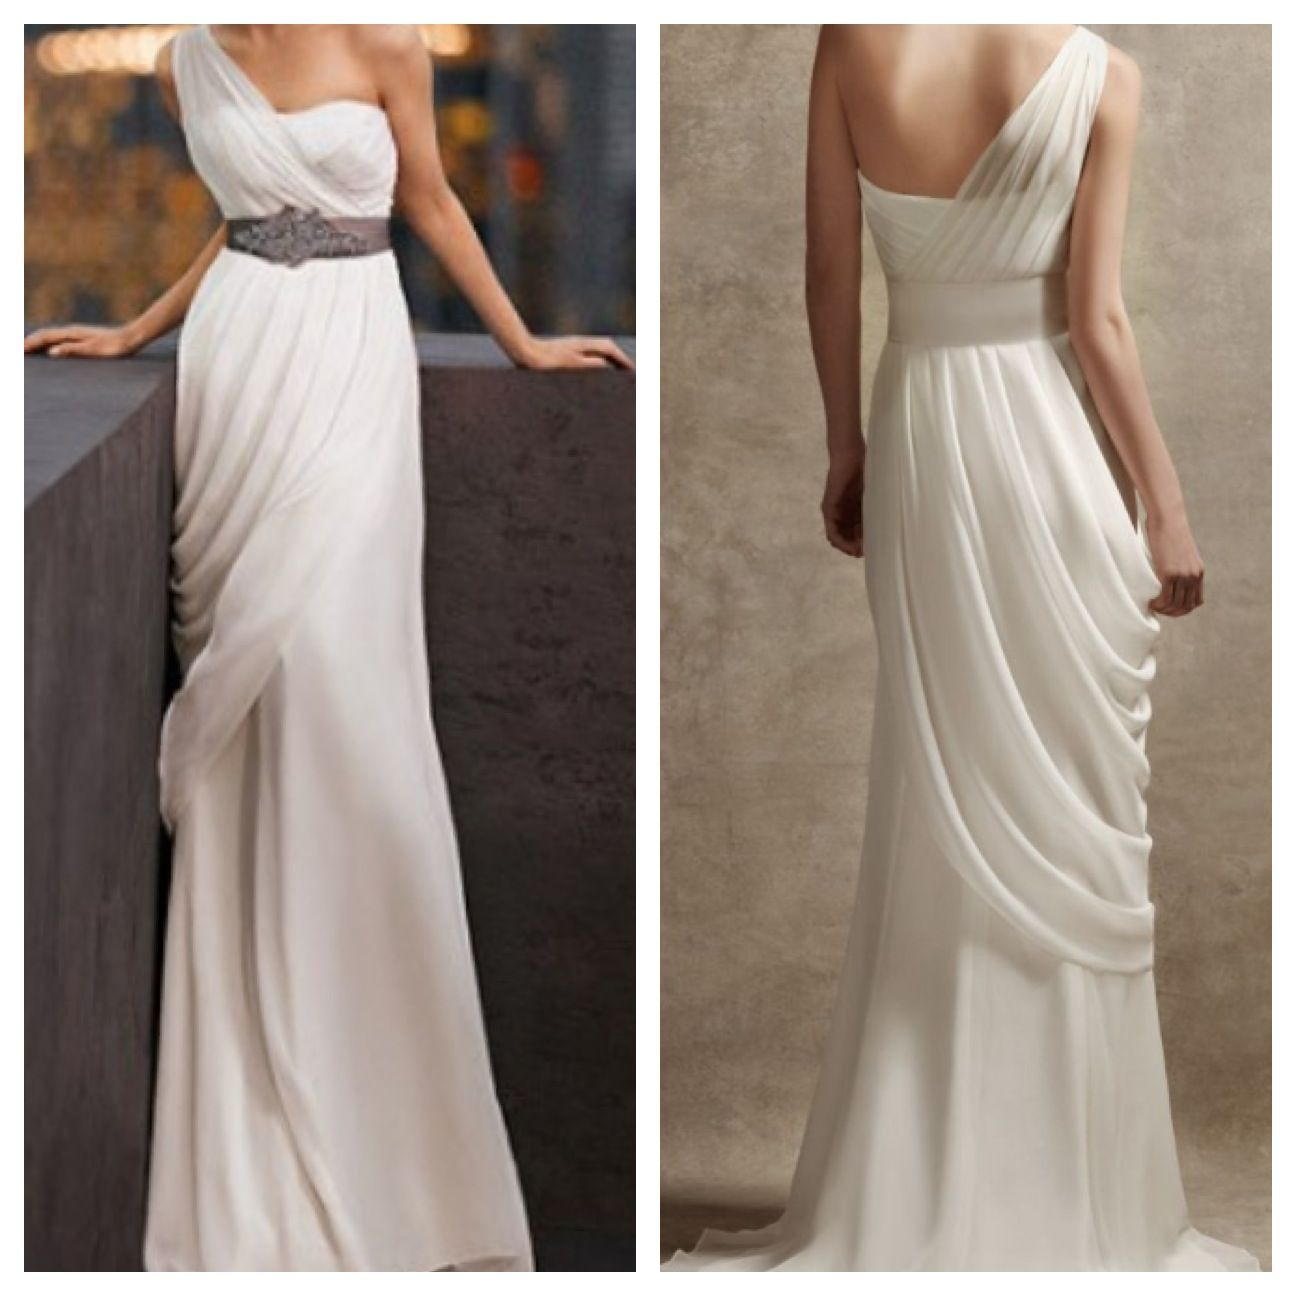 196 Best The Greek Wedding Dress Images On Pinterest: Here's Another Similar Greek Gown, I Prefer The One